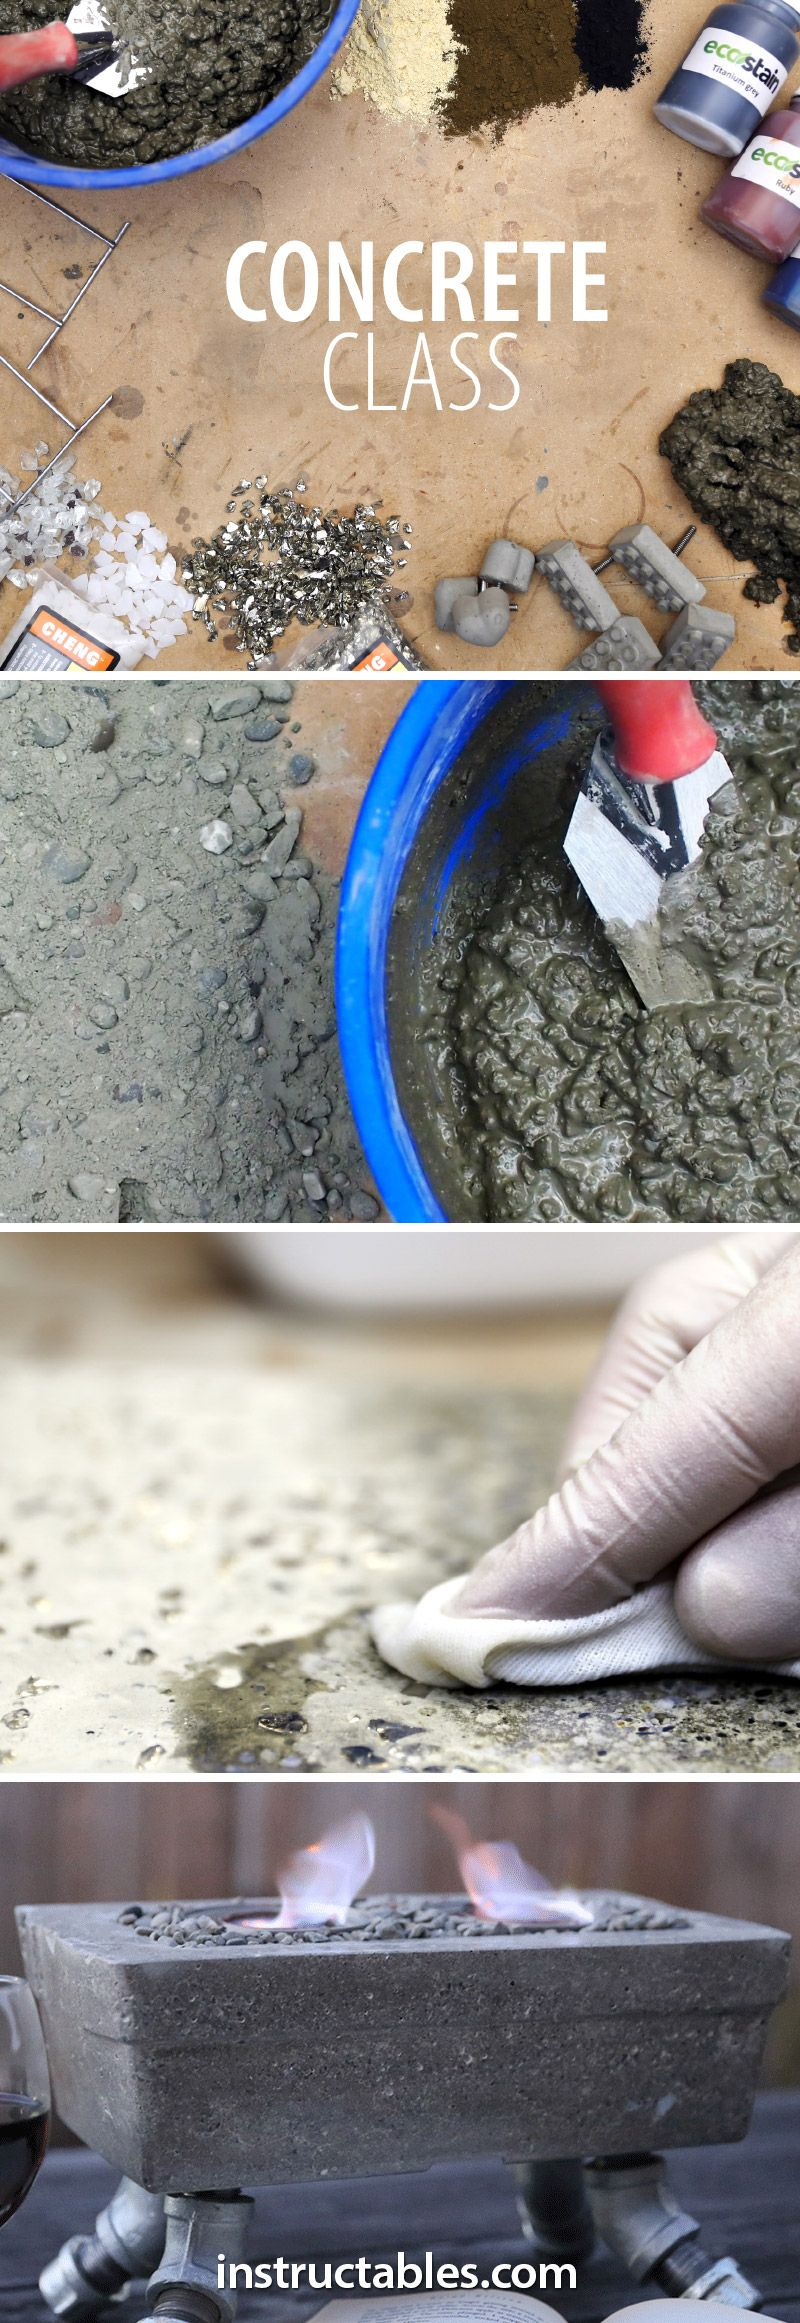 Learn many creative applications for concrete through fun, hands-on projects.